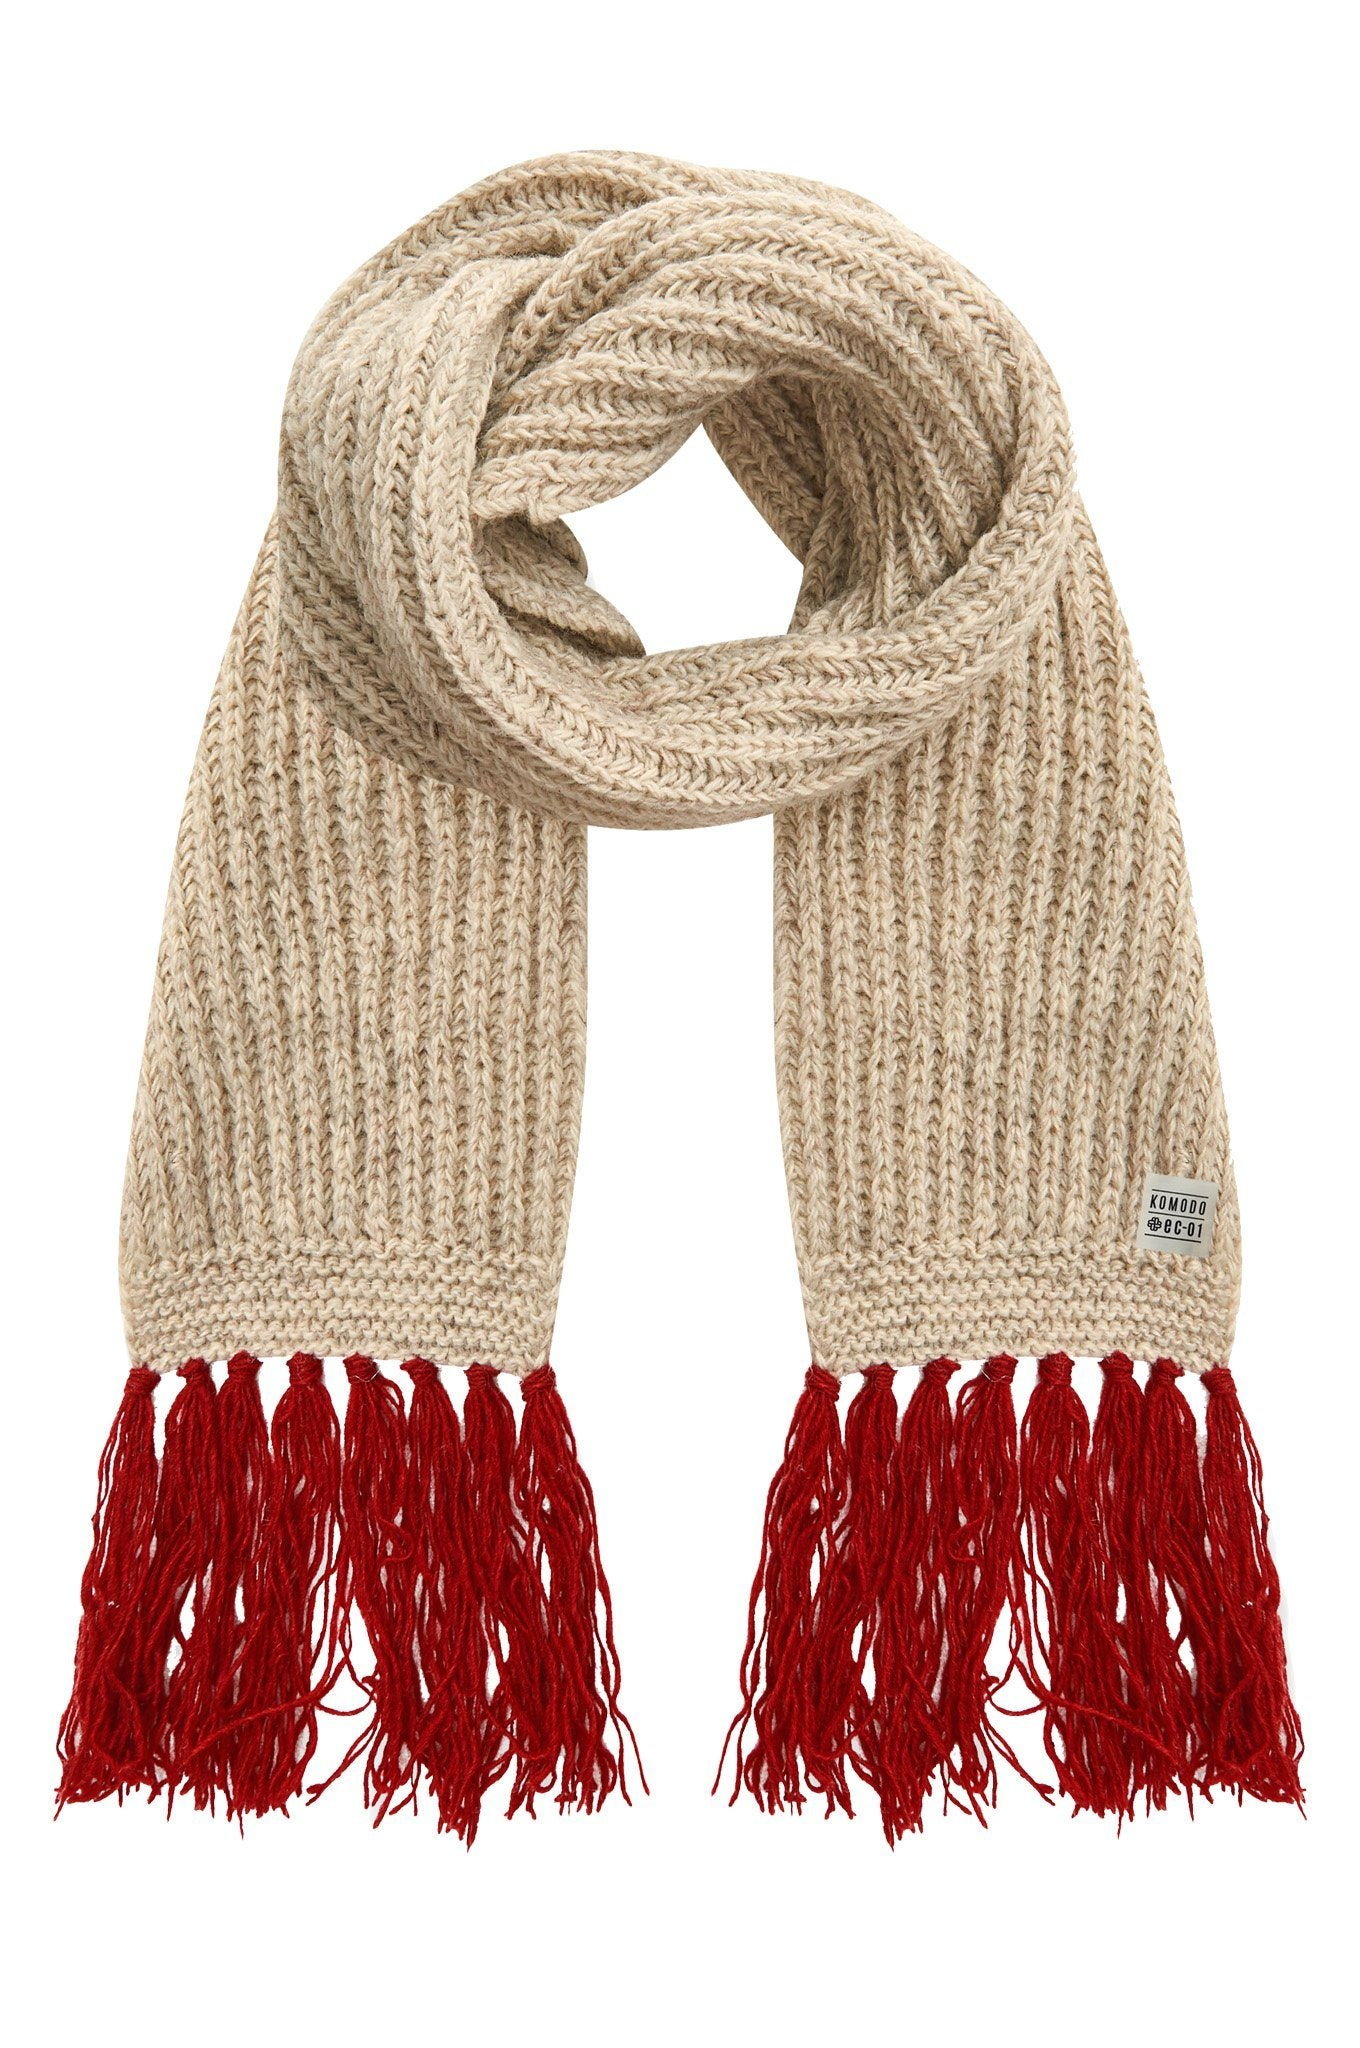 Accessories - LIZZIE Recycled Wool Scarf Oatmeal